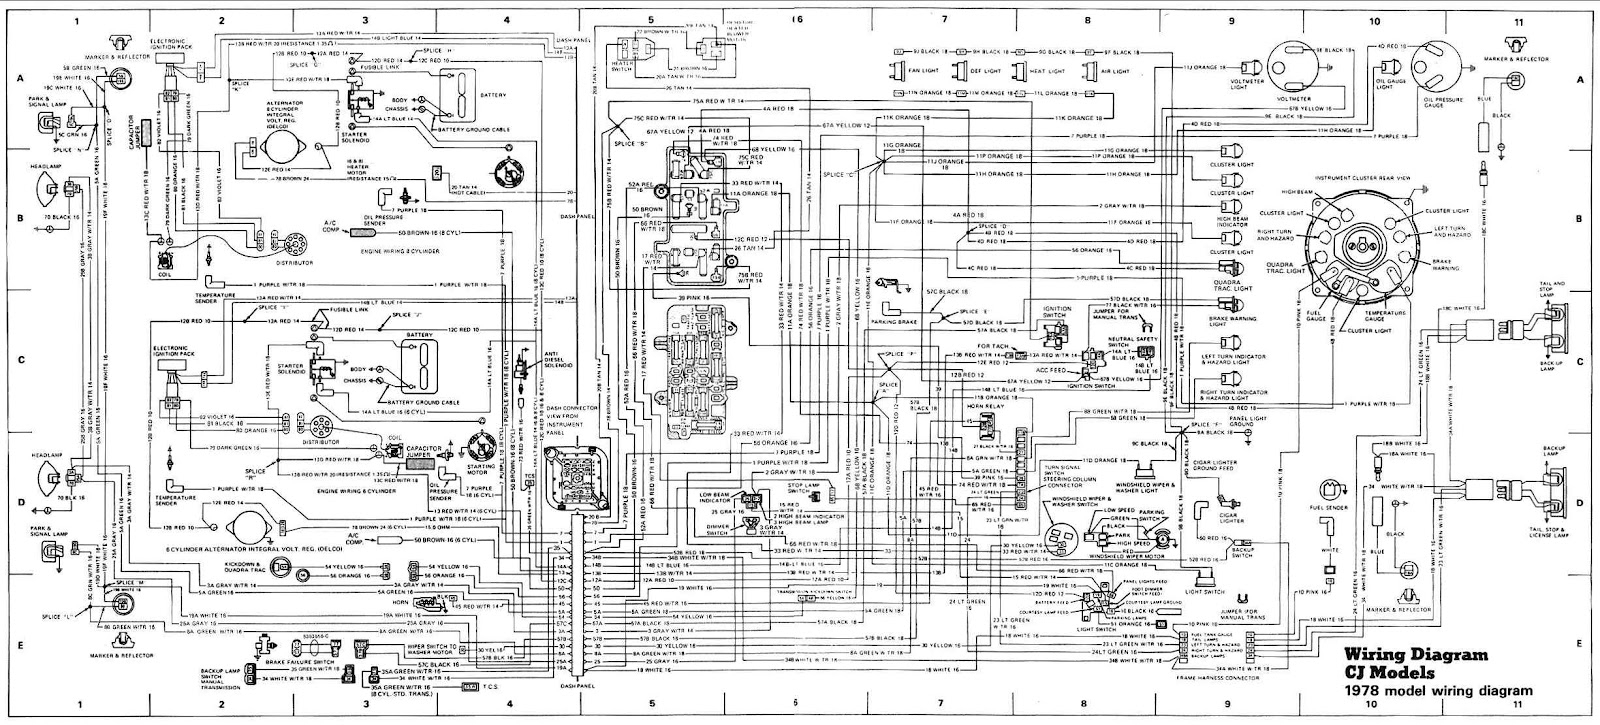 jeep grand cherokee wj stereo system wiring diagrams throughout 1998 jeep grand cherokee parts diagram wiring diagram for jeep grand cherokee wiring diagram simonand 1987 jeep grand wagoneer wiring diagram at edmiracle.co